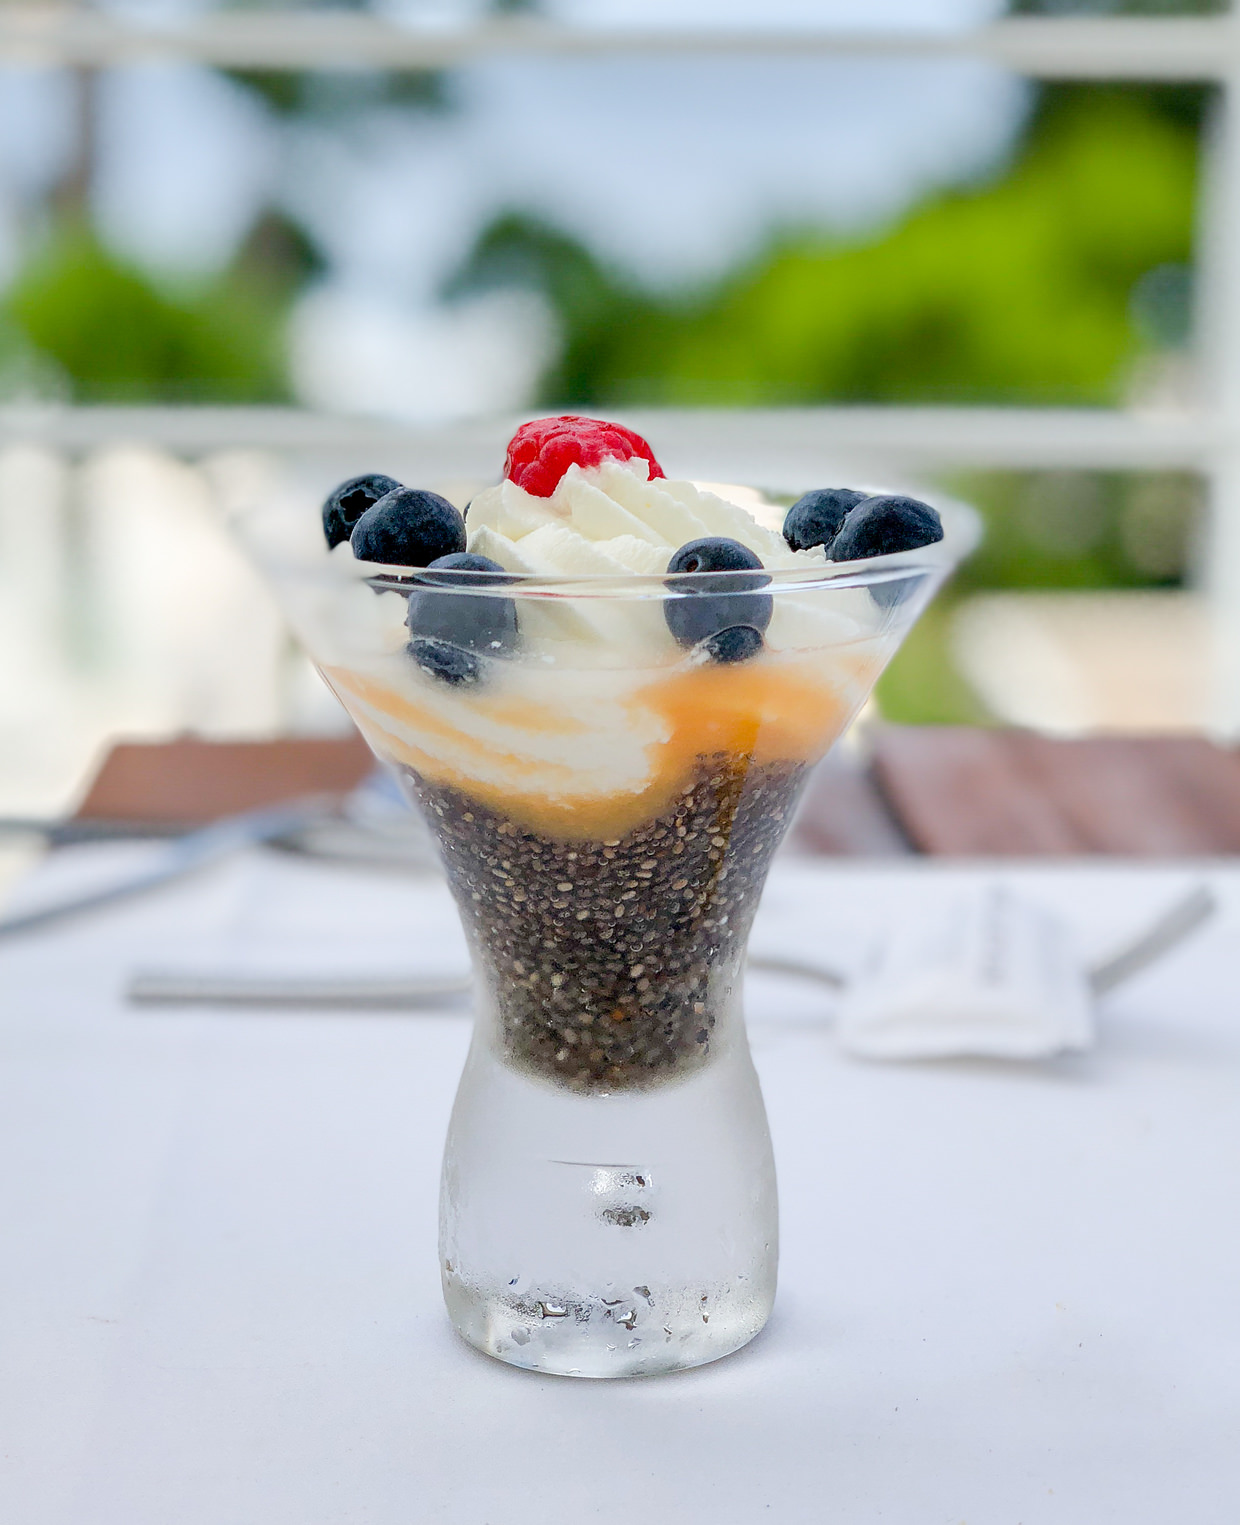 A scrumptious chia seed, yoghurt and fruit concoction